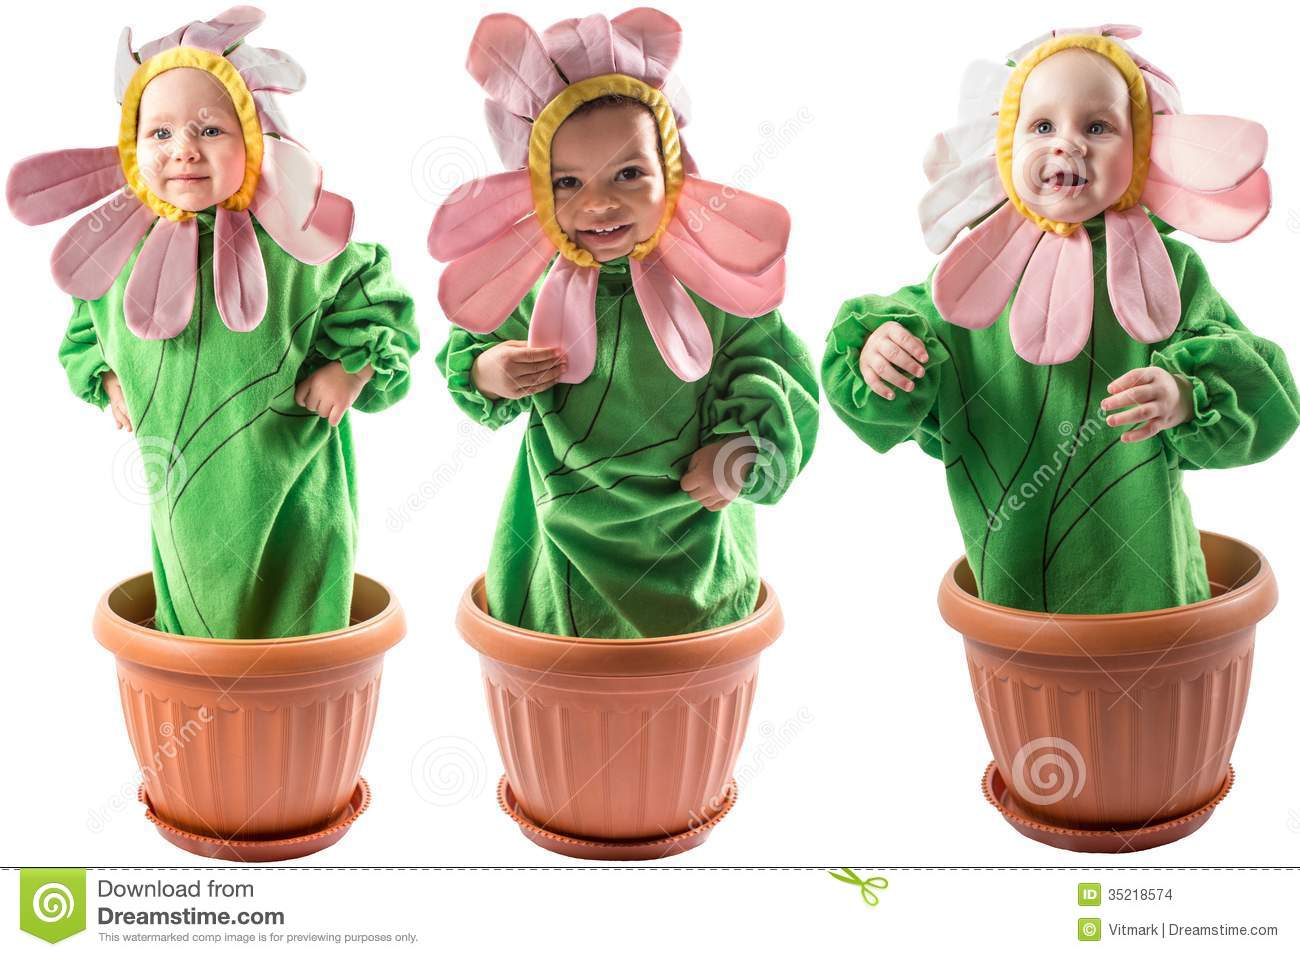 Collage Of Adorable Baby Boy And Girl, Dressed In Flower ...